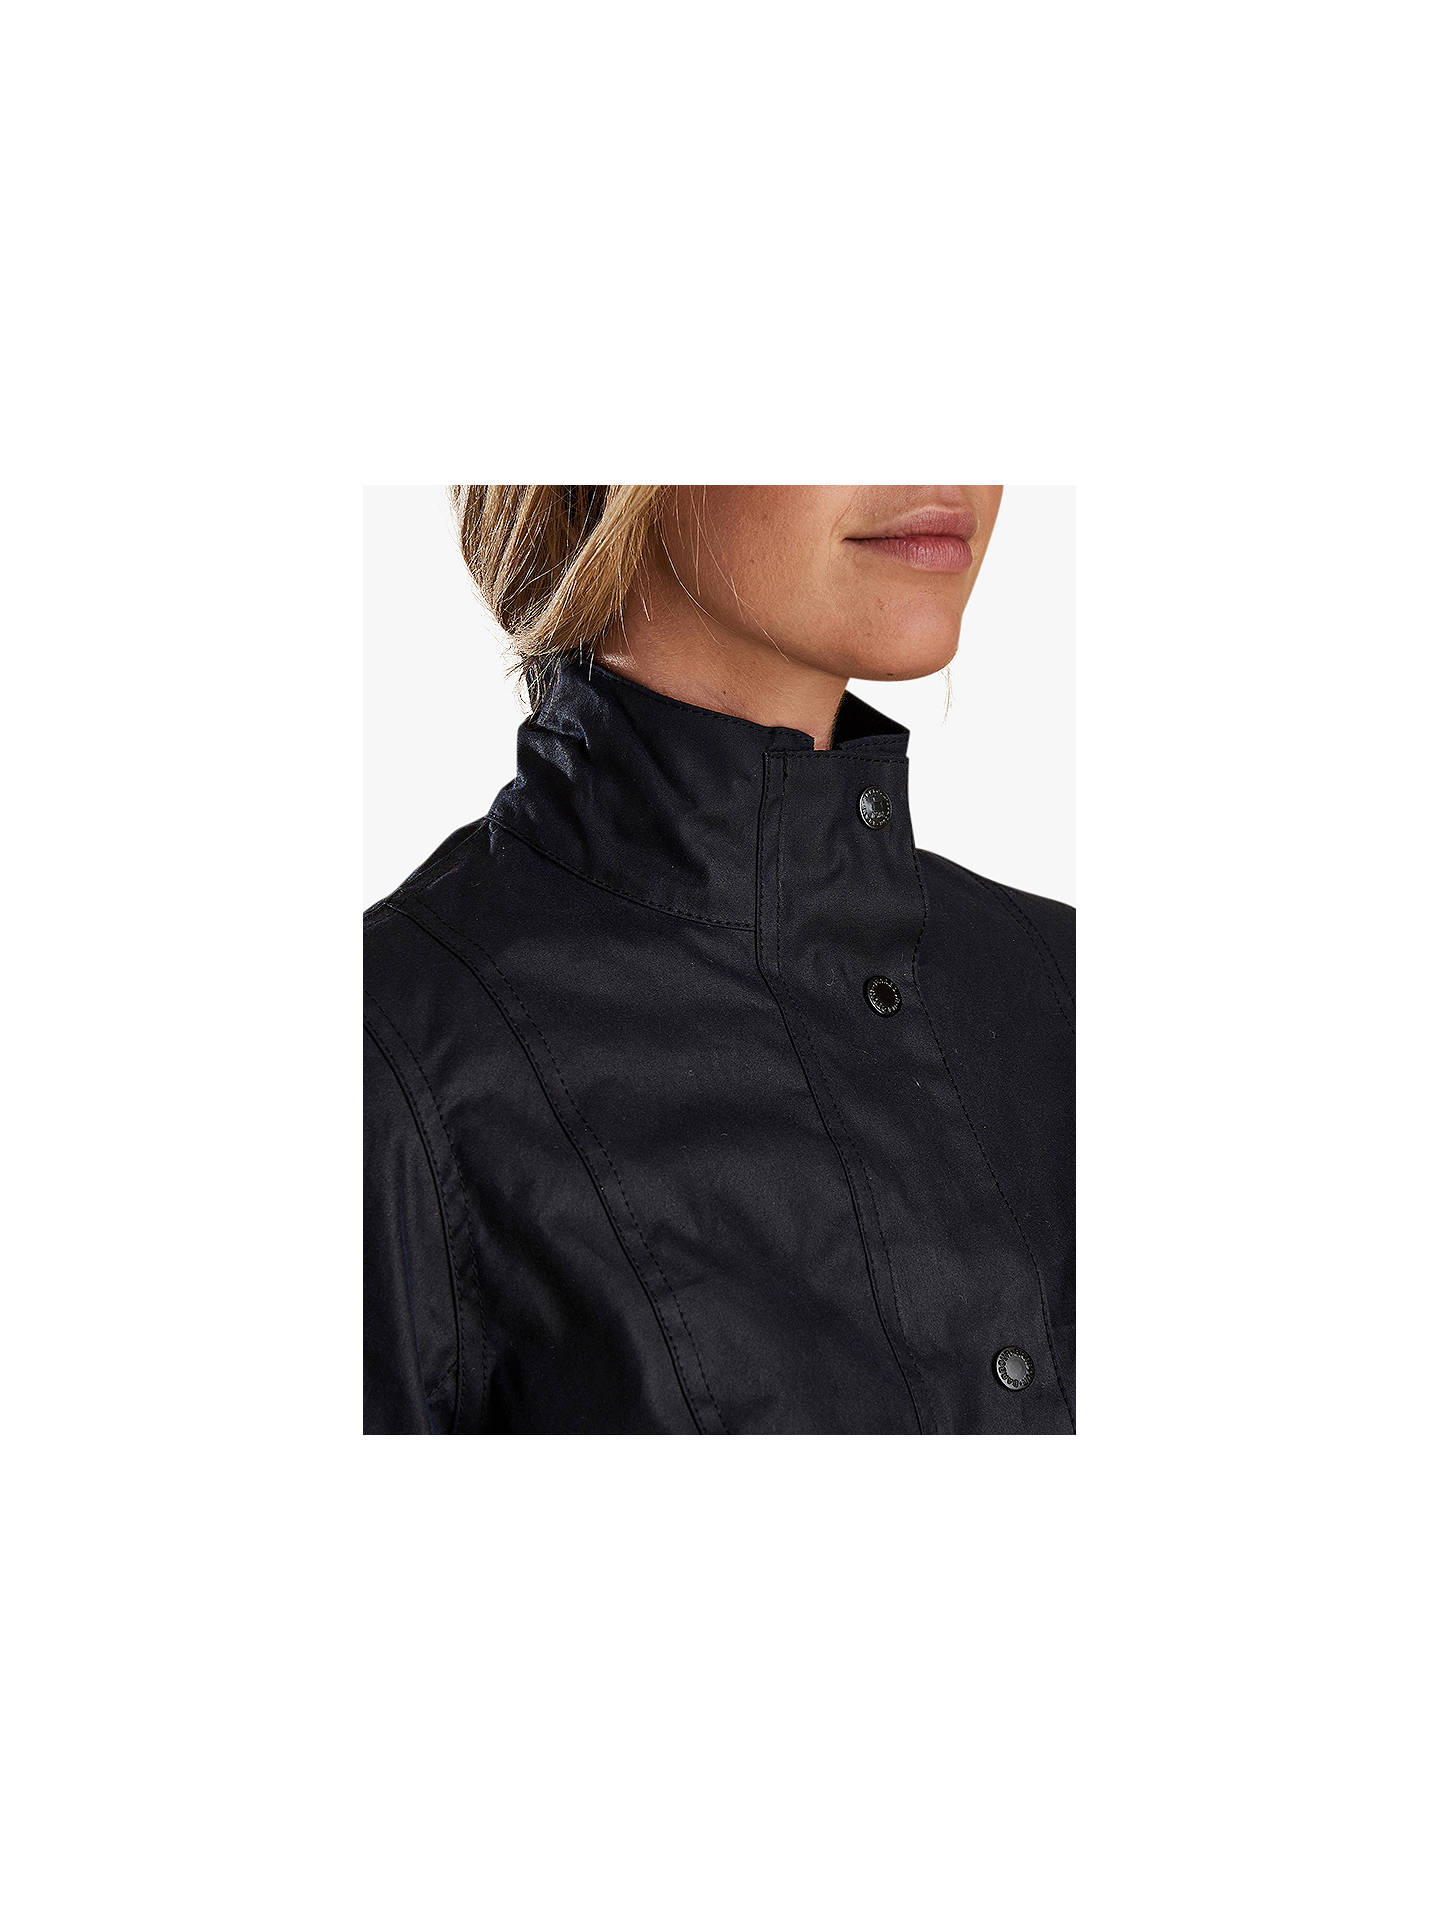 BuyBarbour Newquay Wax Cotton Jacket, Royal Navy, 8 Online at johnlewis.com